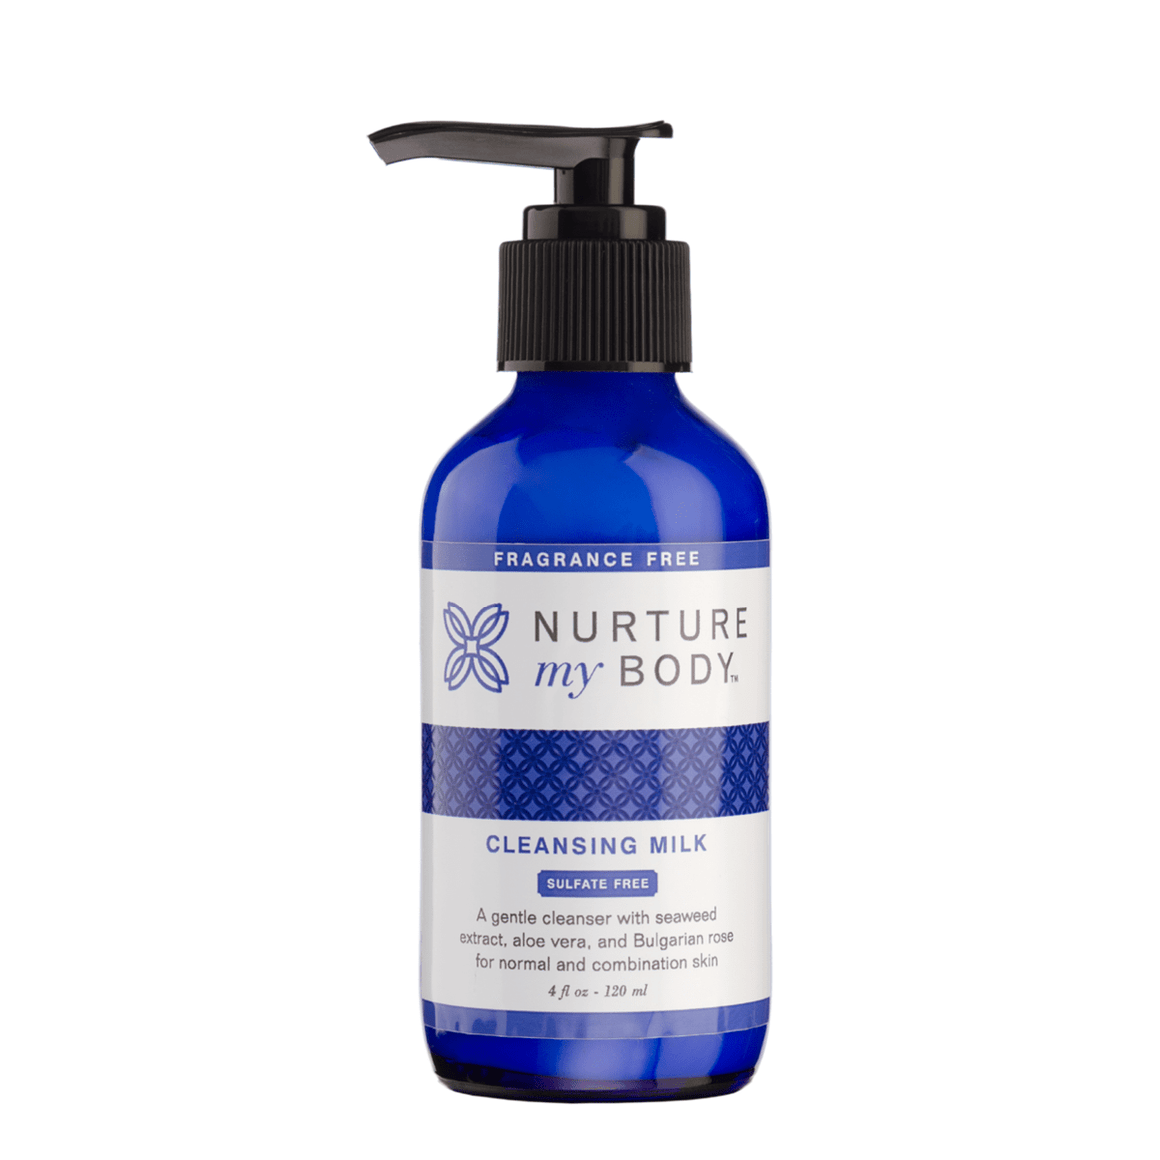 Fragrance Free Cleansing Milk sulfate free natural cleanser by Nurture My Body